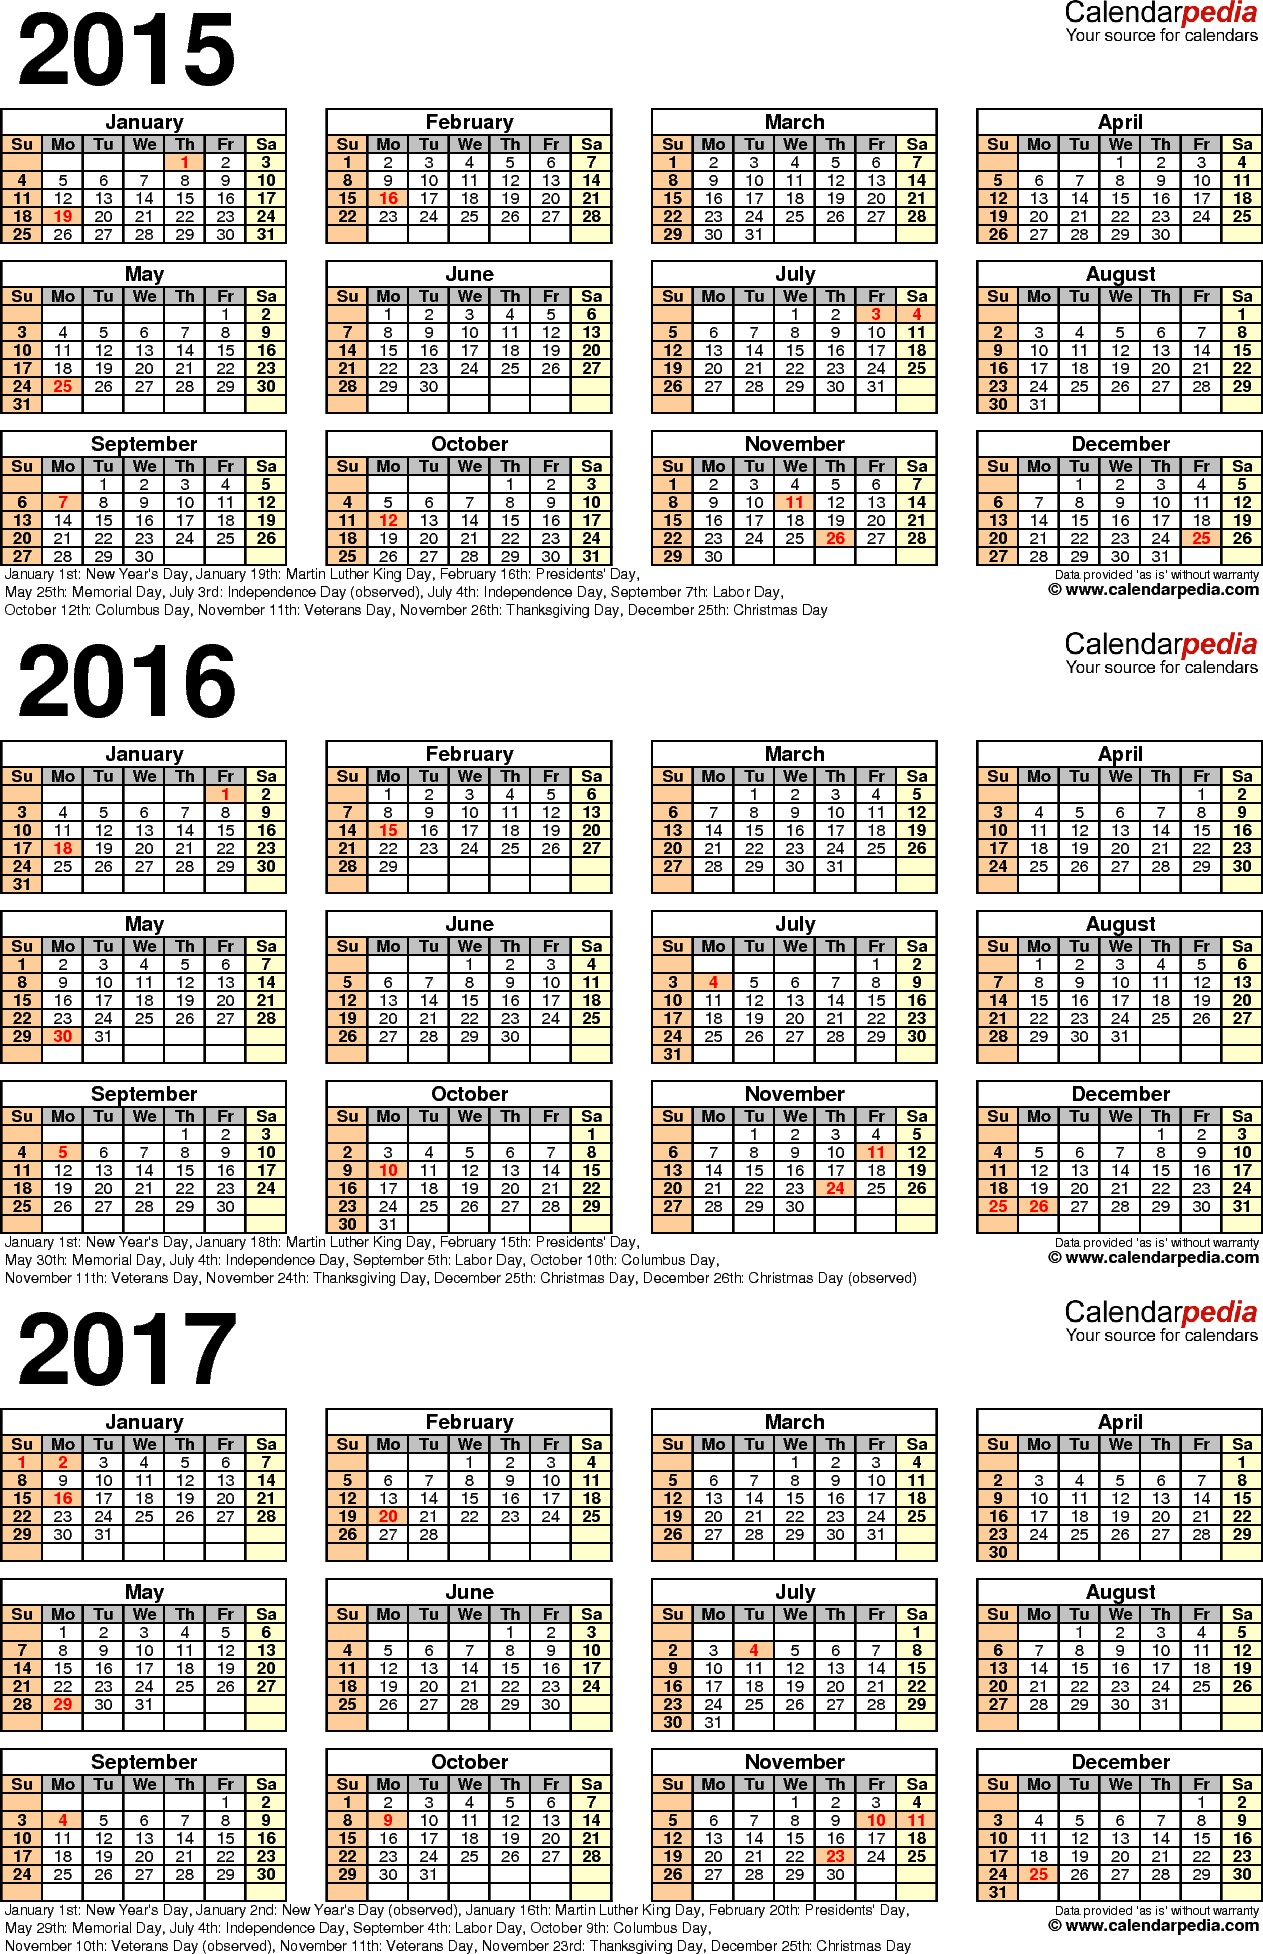 March 2019 Calendar Uk Printable Más Caliente 2015 2016 2017 Calendar 4 Three Year Printable Pdf Calendars Of March 2019 Calendar Uk Printable Más Actual Sat Test Dates Your Best Test Date 2017 2018 2019 2020